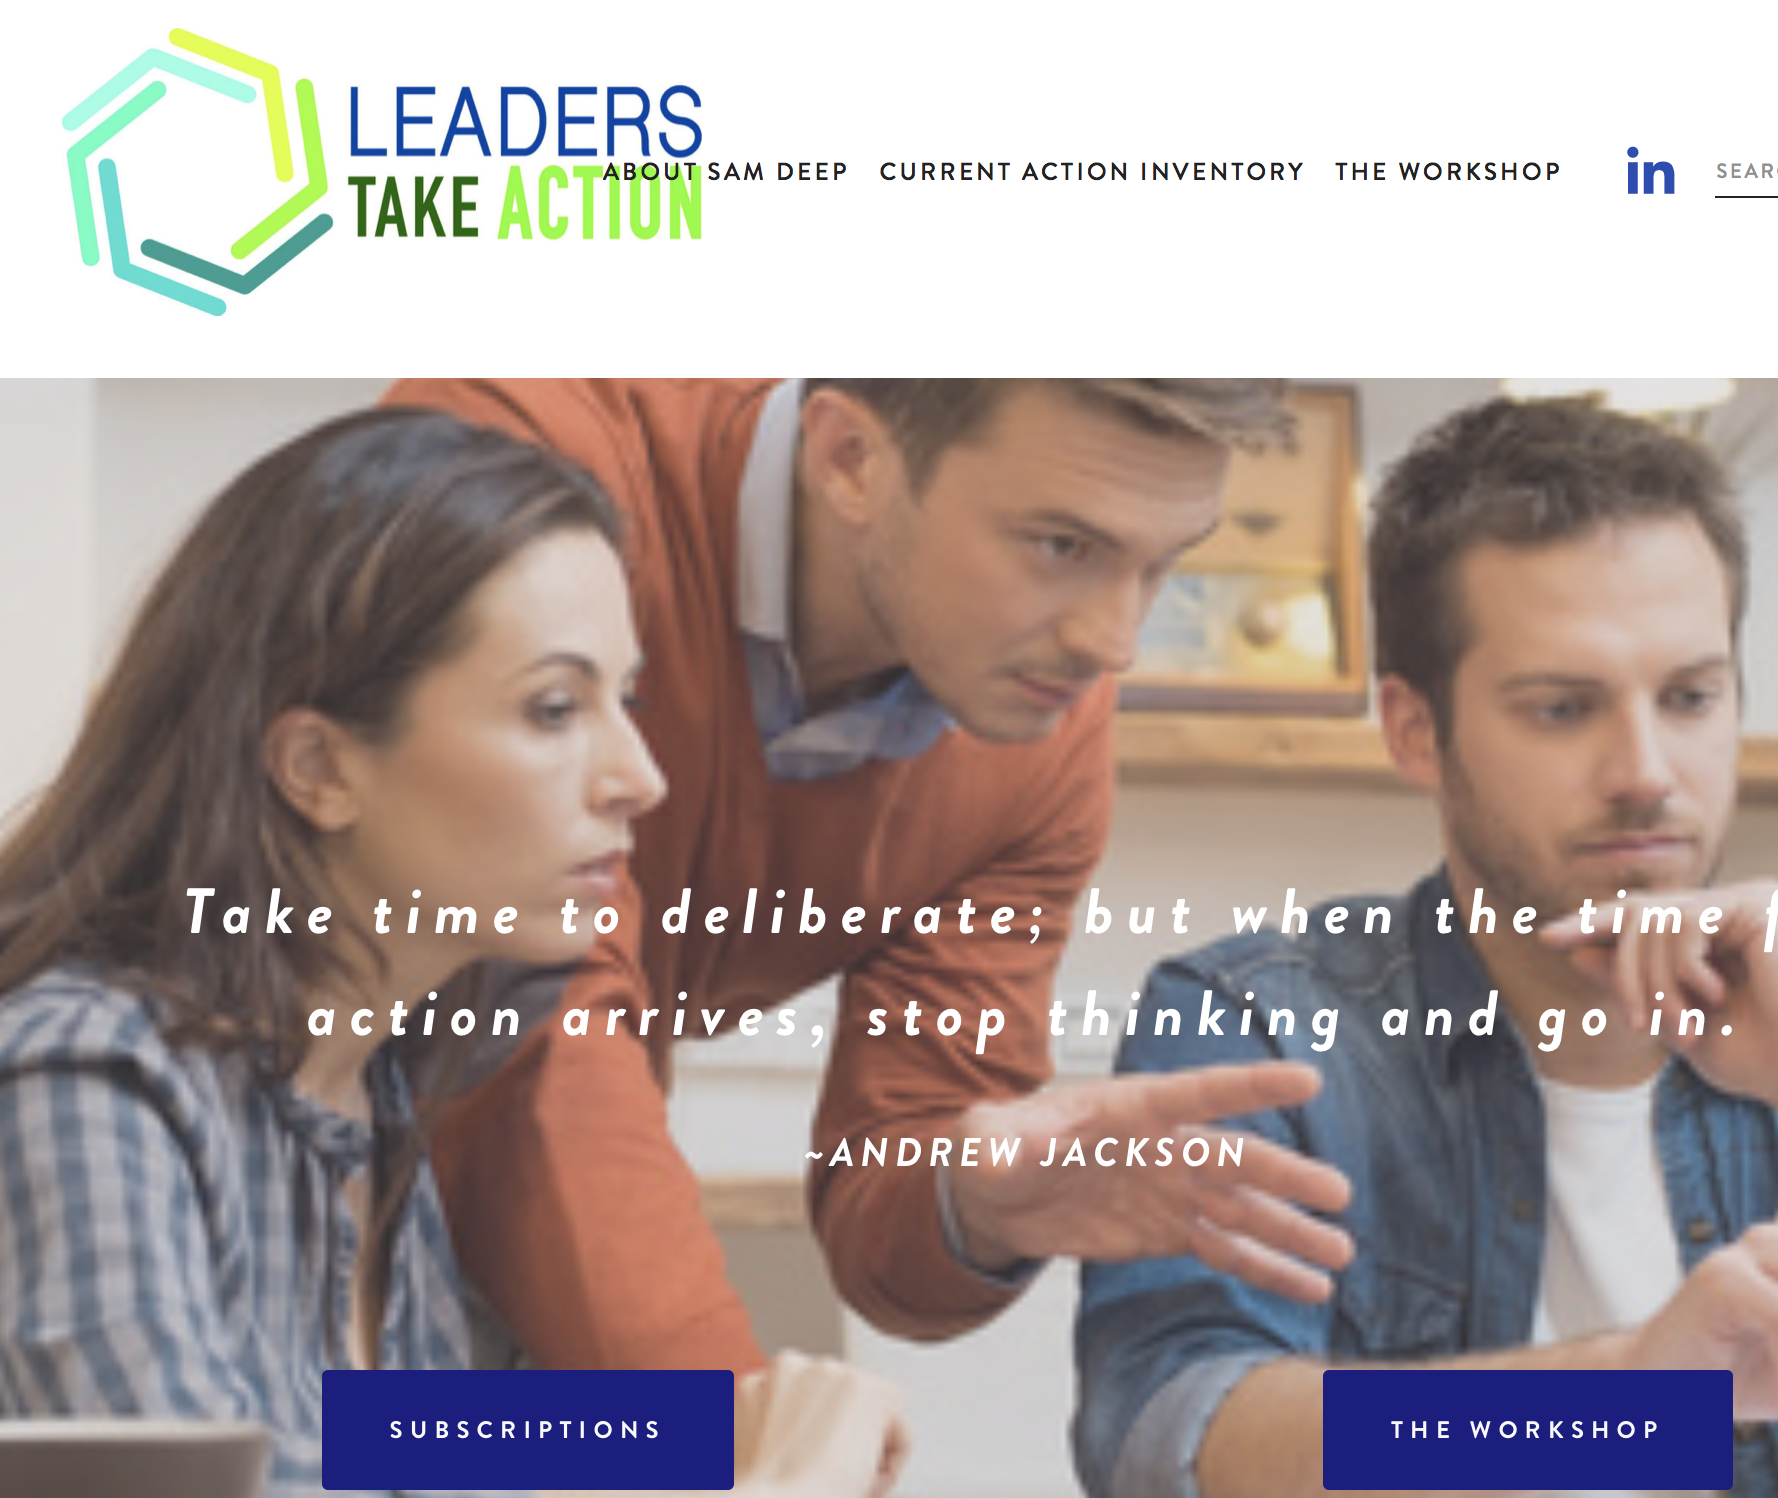 Leaders Take Action - Leadership training business. Click on the image above to view the website.